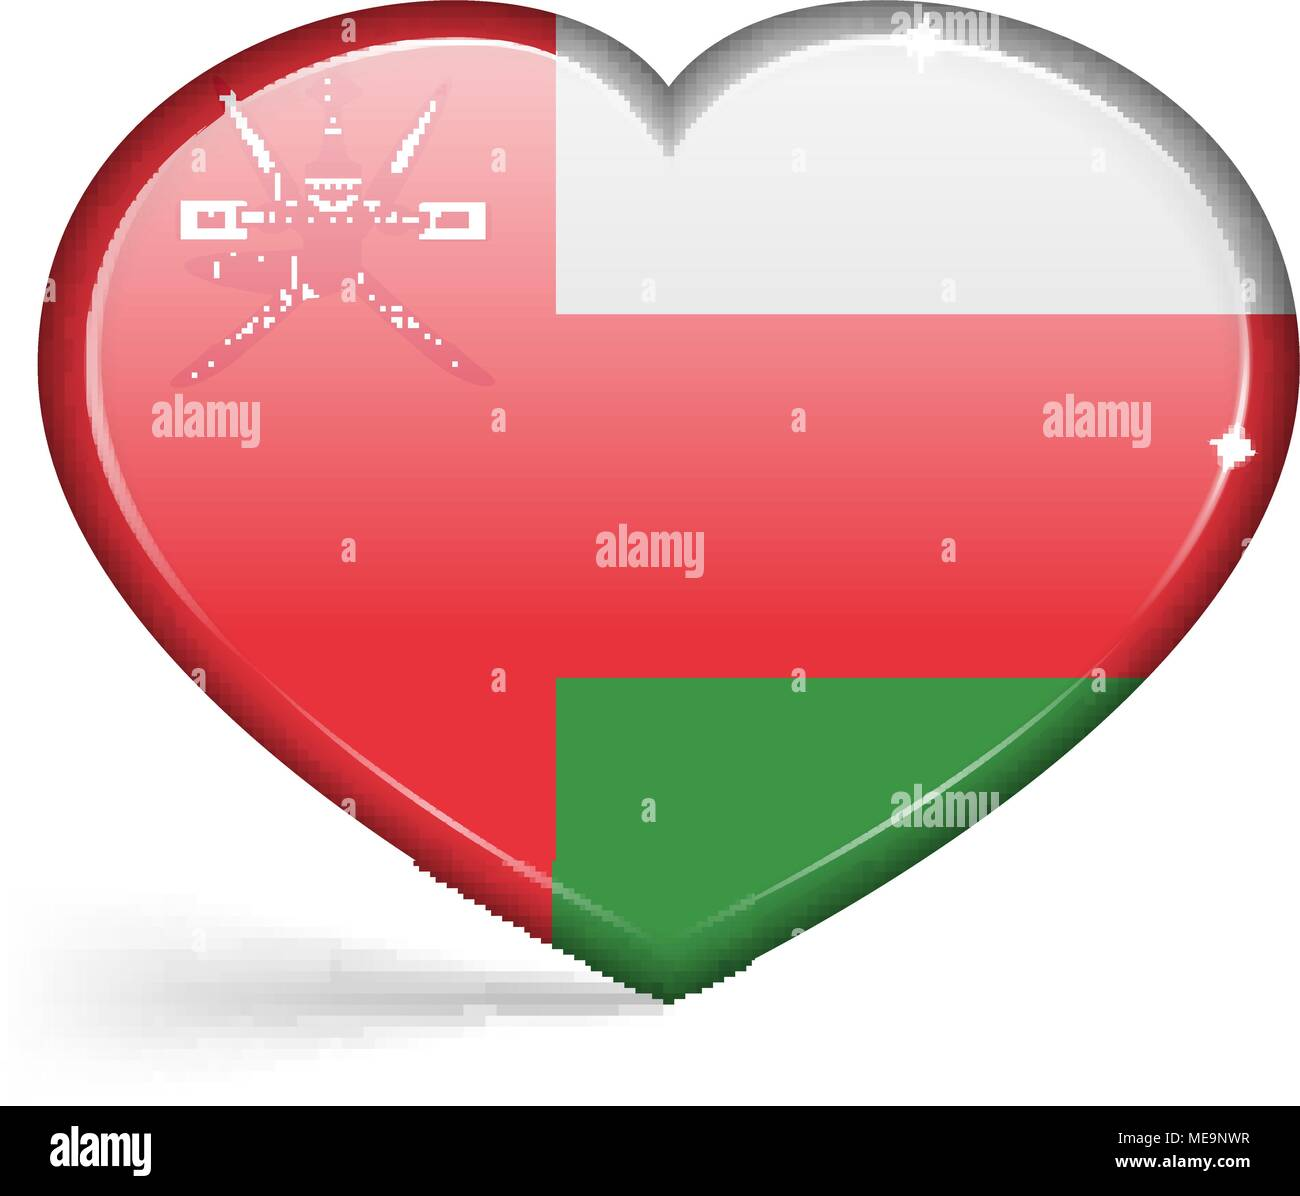 Flags of Oman in a heart shape with highlights on the edges. Vector illustration - Stock Image